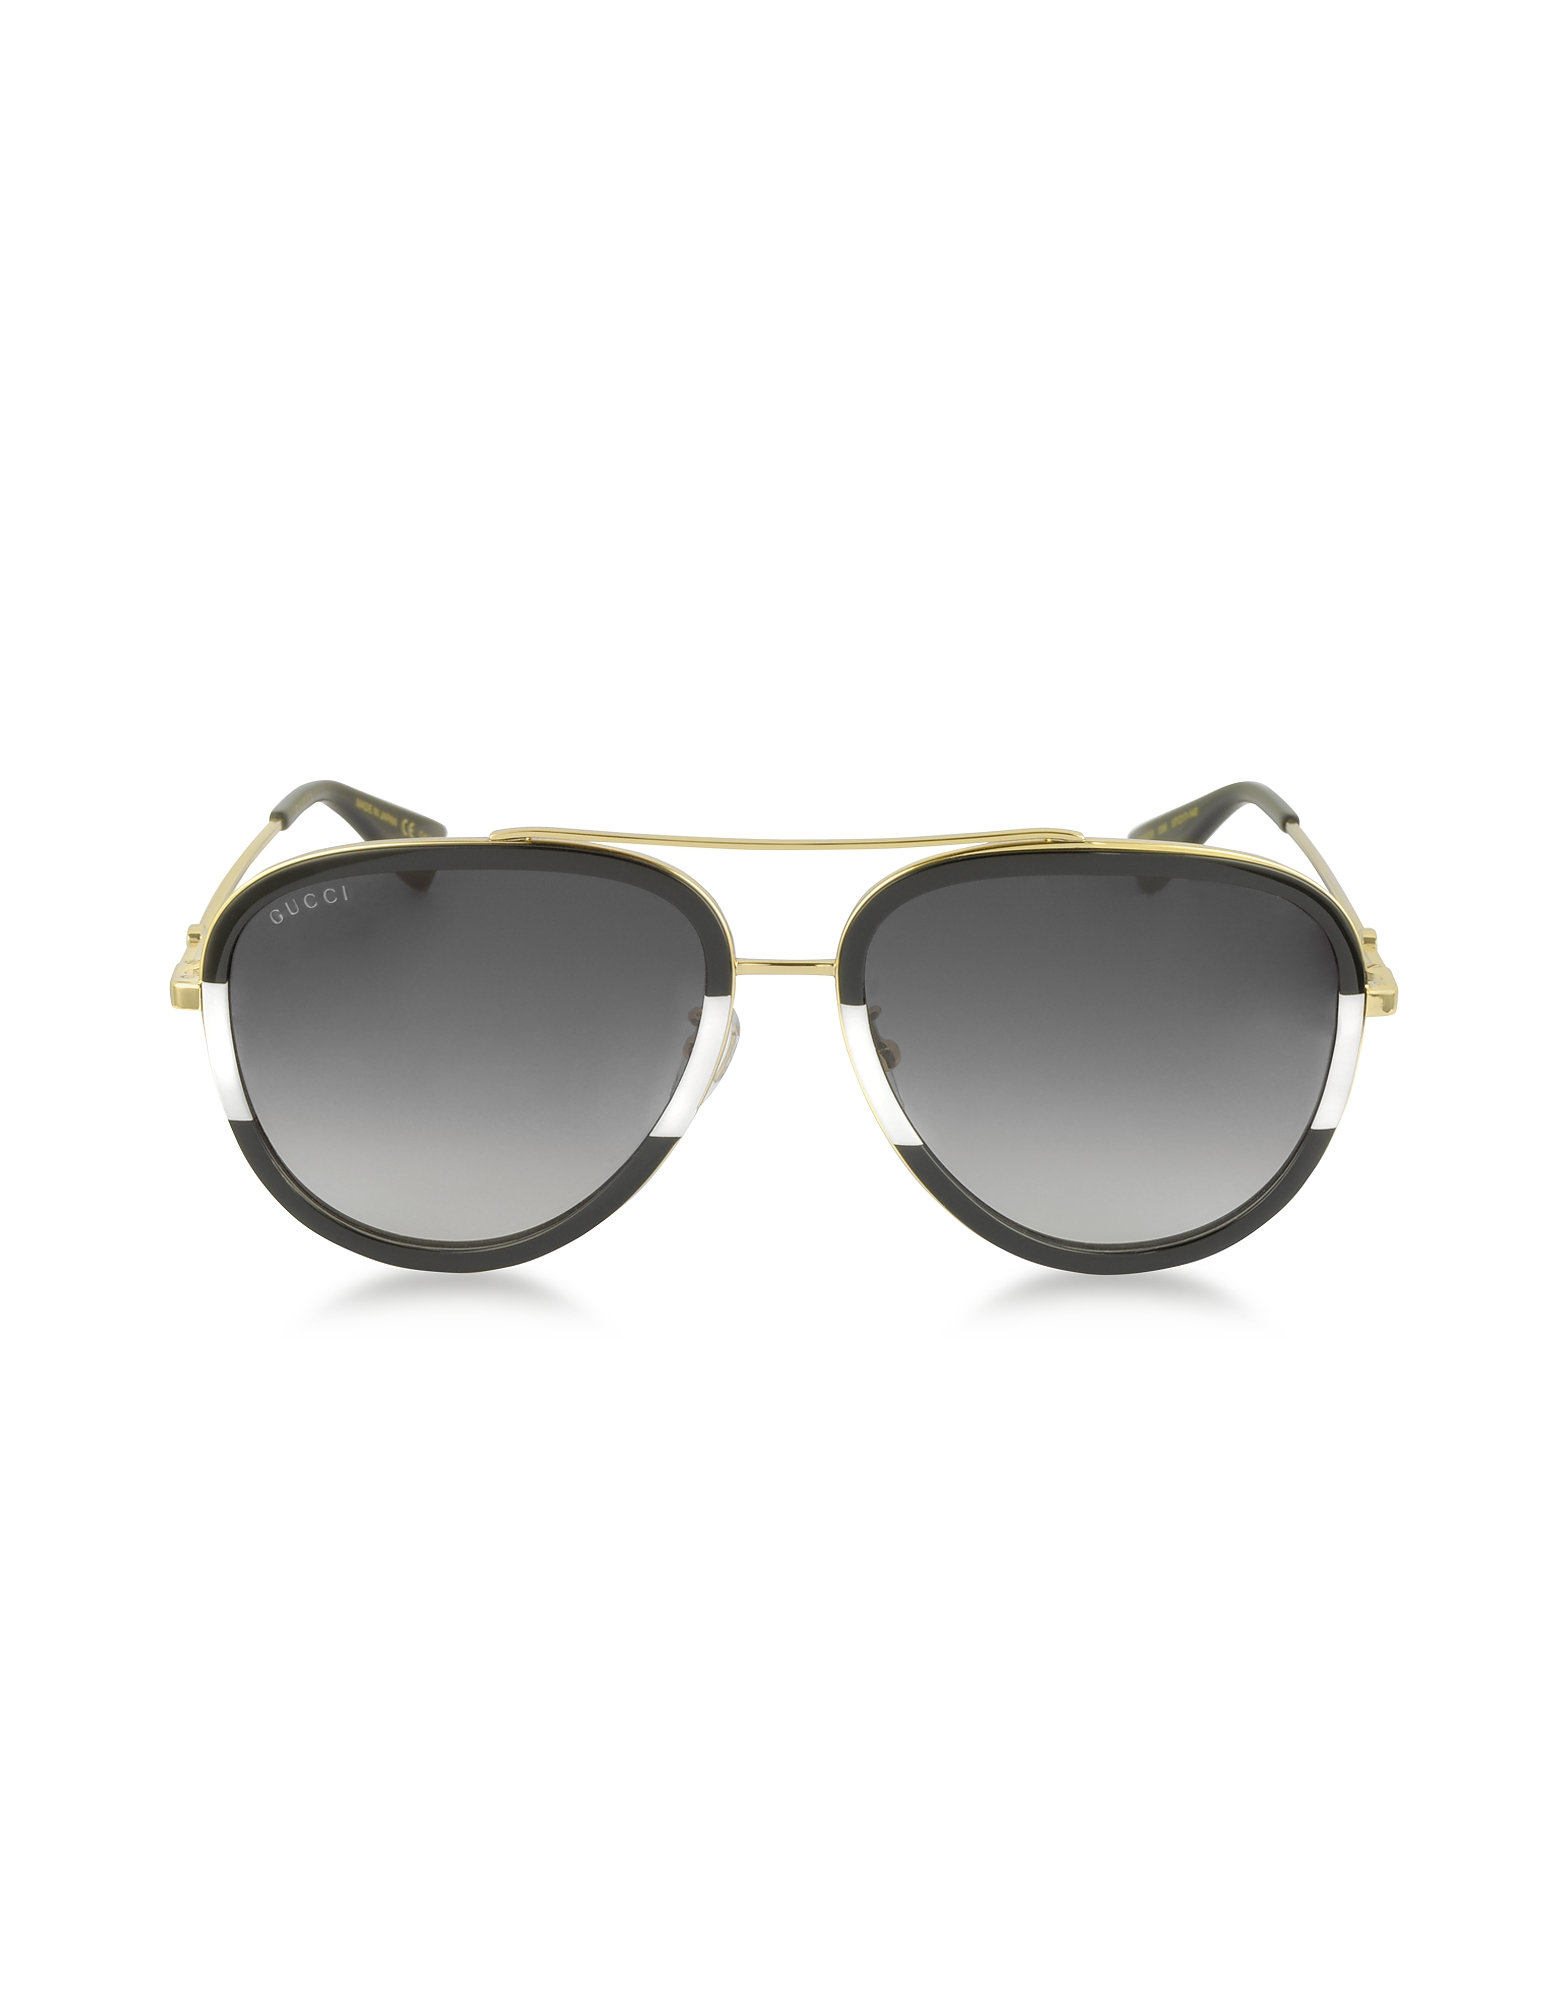 Gucci Sunglasses, GG0062S 006 Black/White Acetate and Gold Metal Aviator Women's Sunglasses